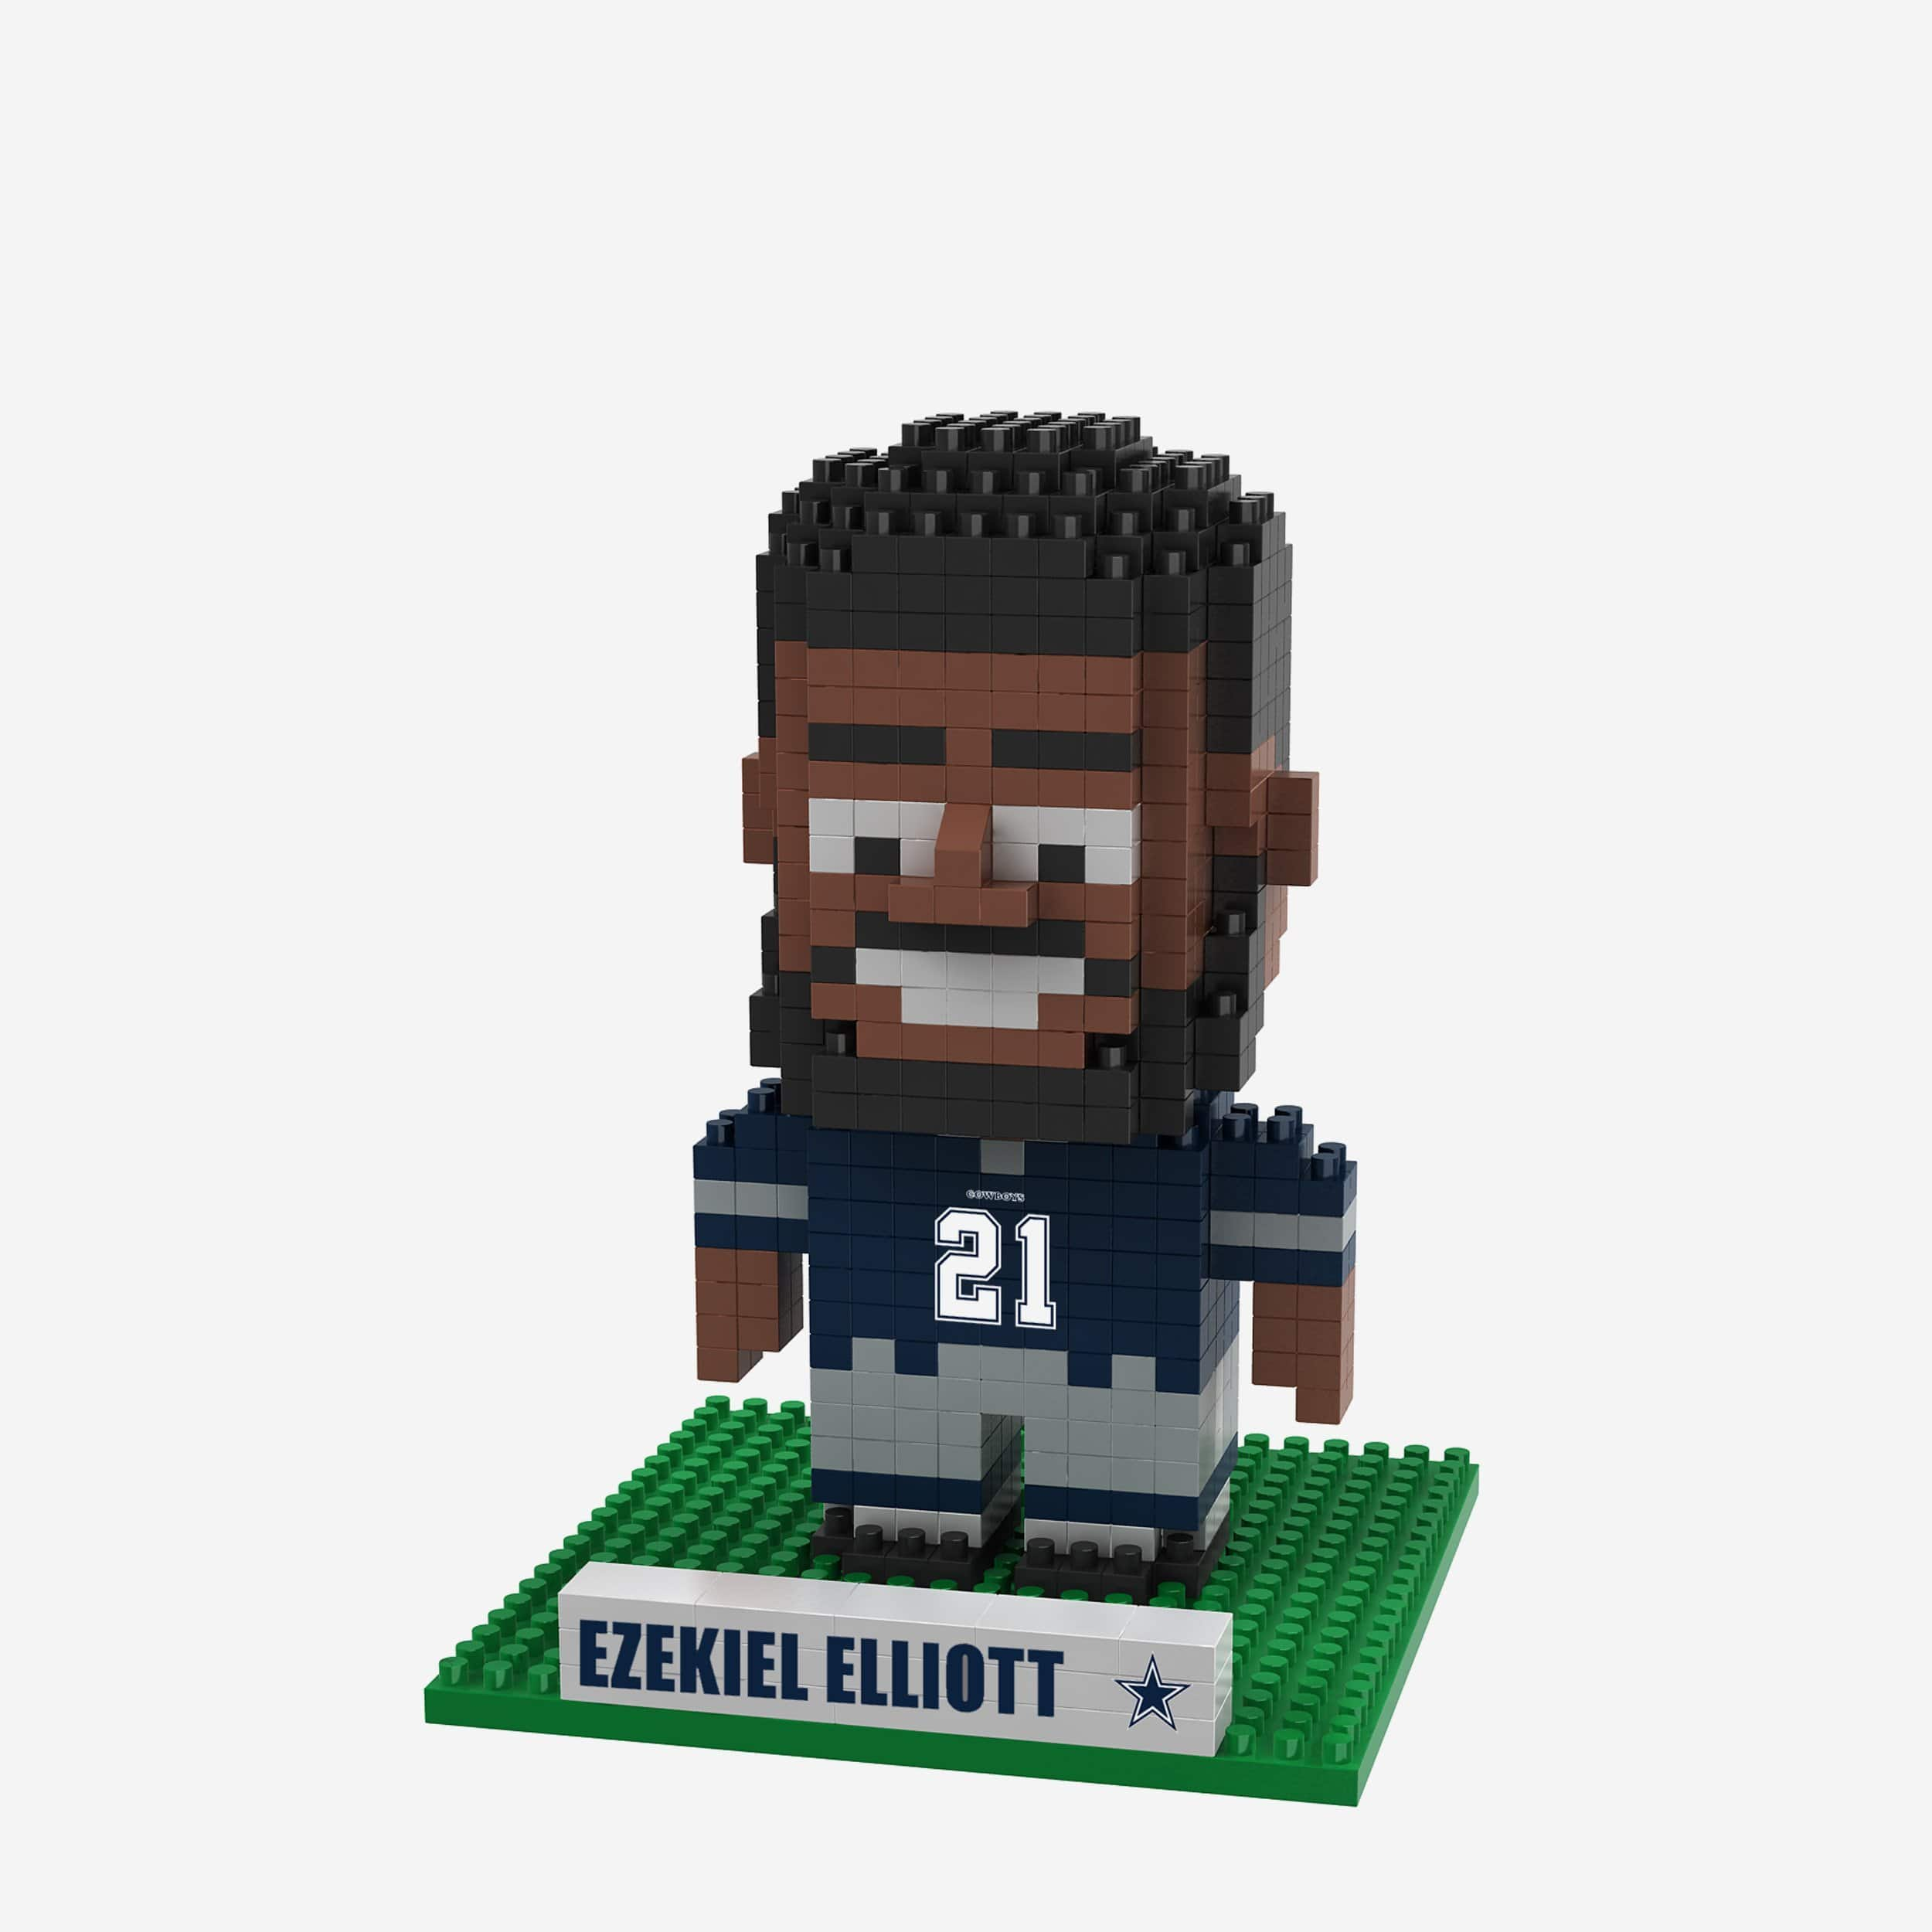 3cea2cb24 Ezekiel Elliot Dallas Cowboys BRXLZ Mini Player FOCO.com